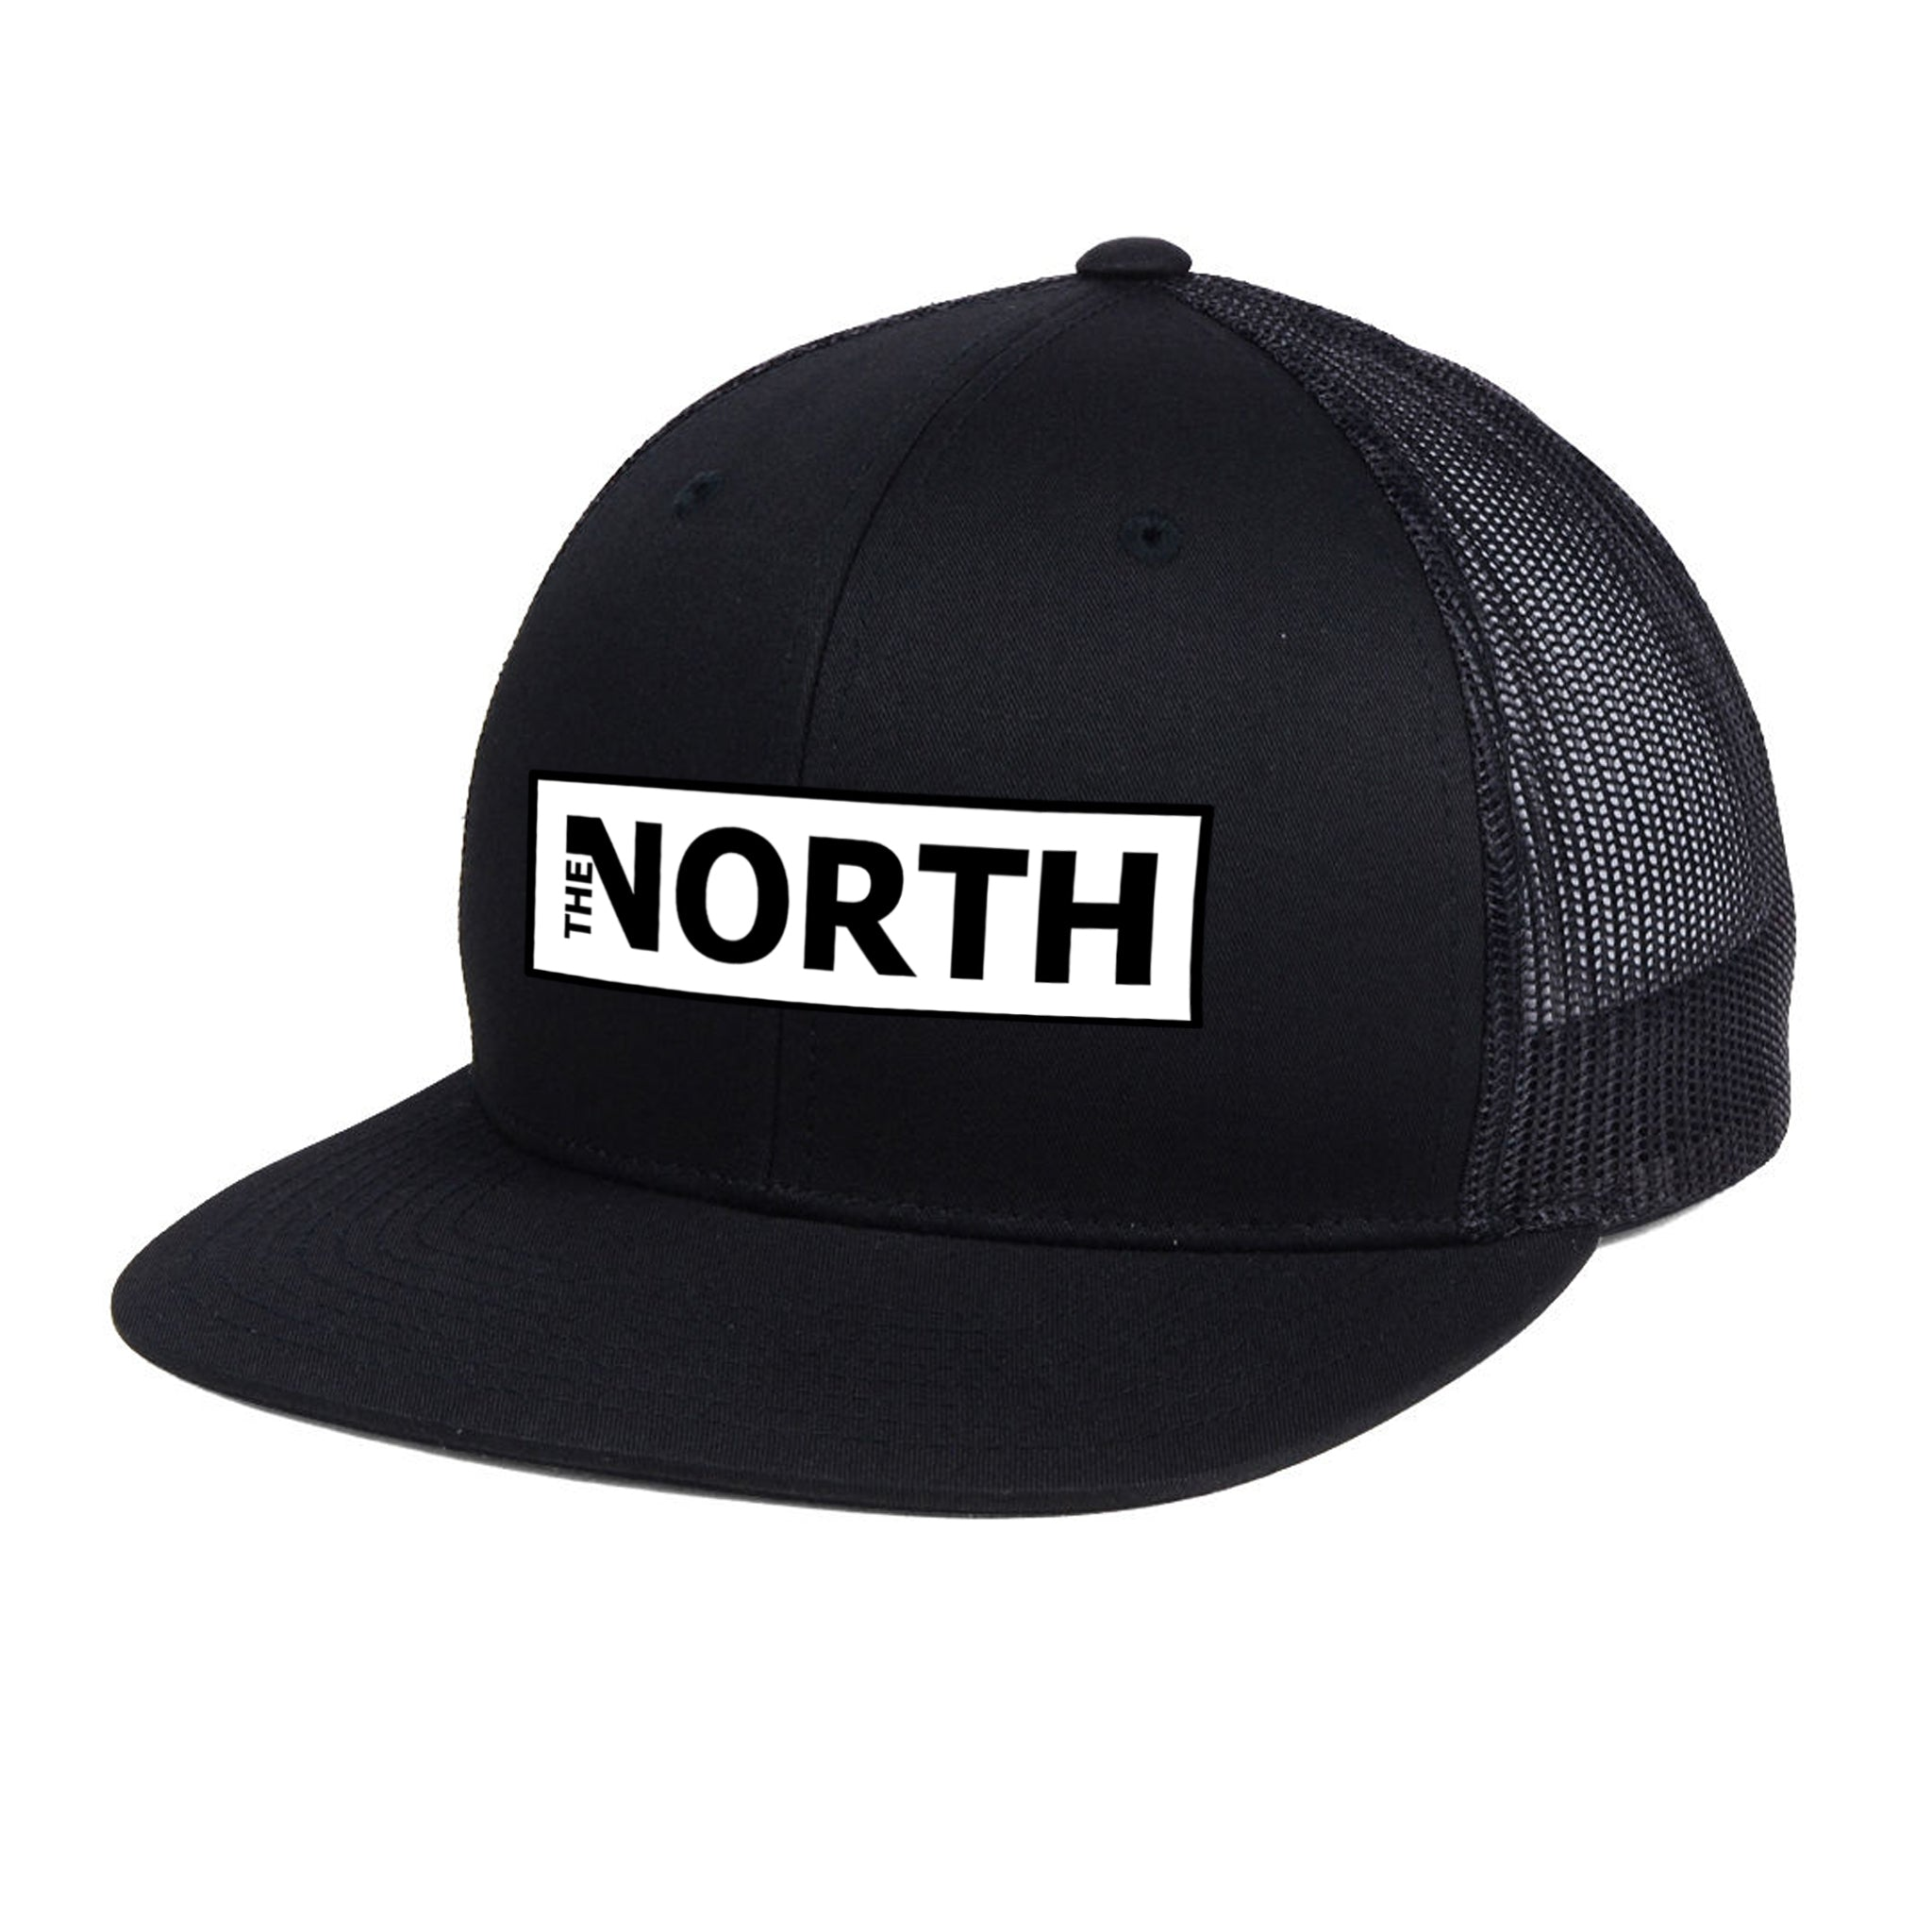 The NORTH - Trucker Hat - Black